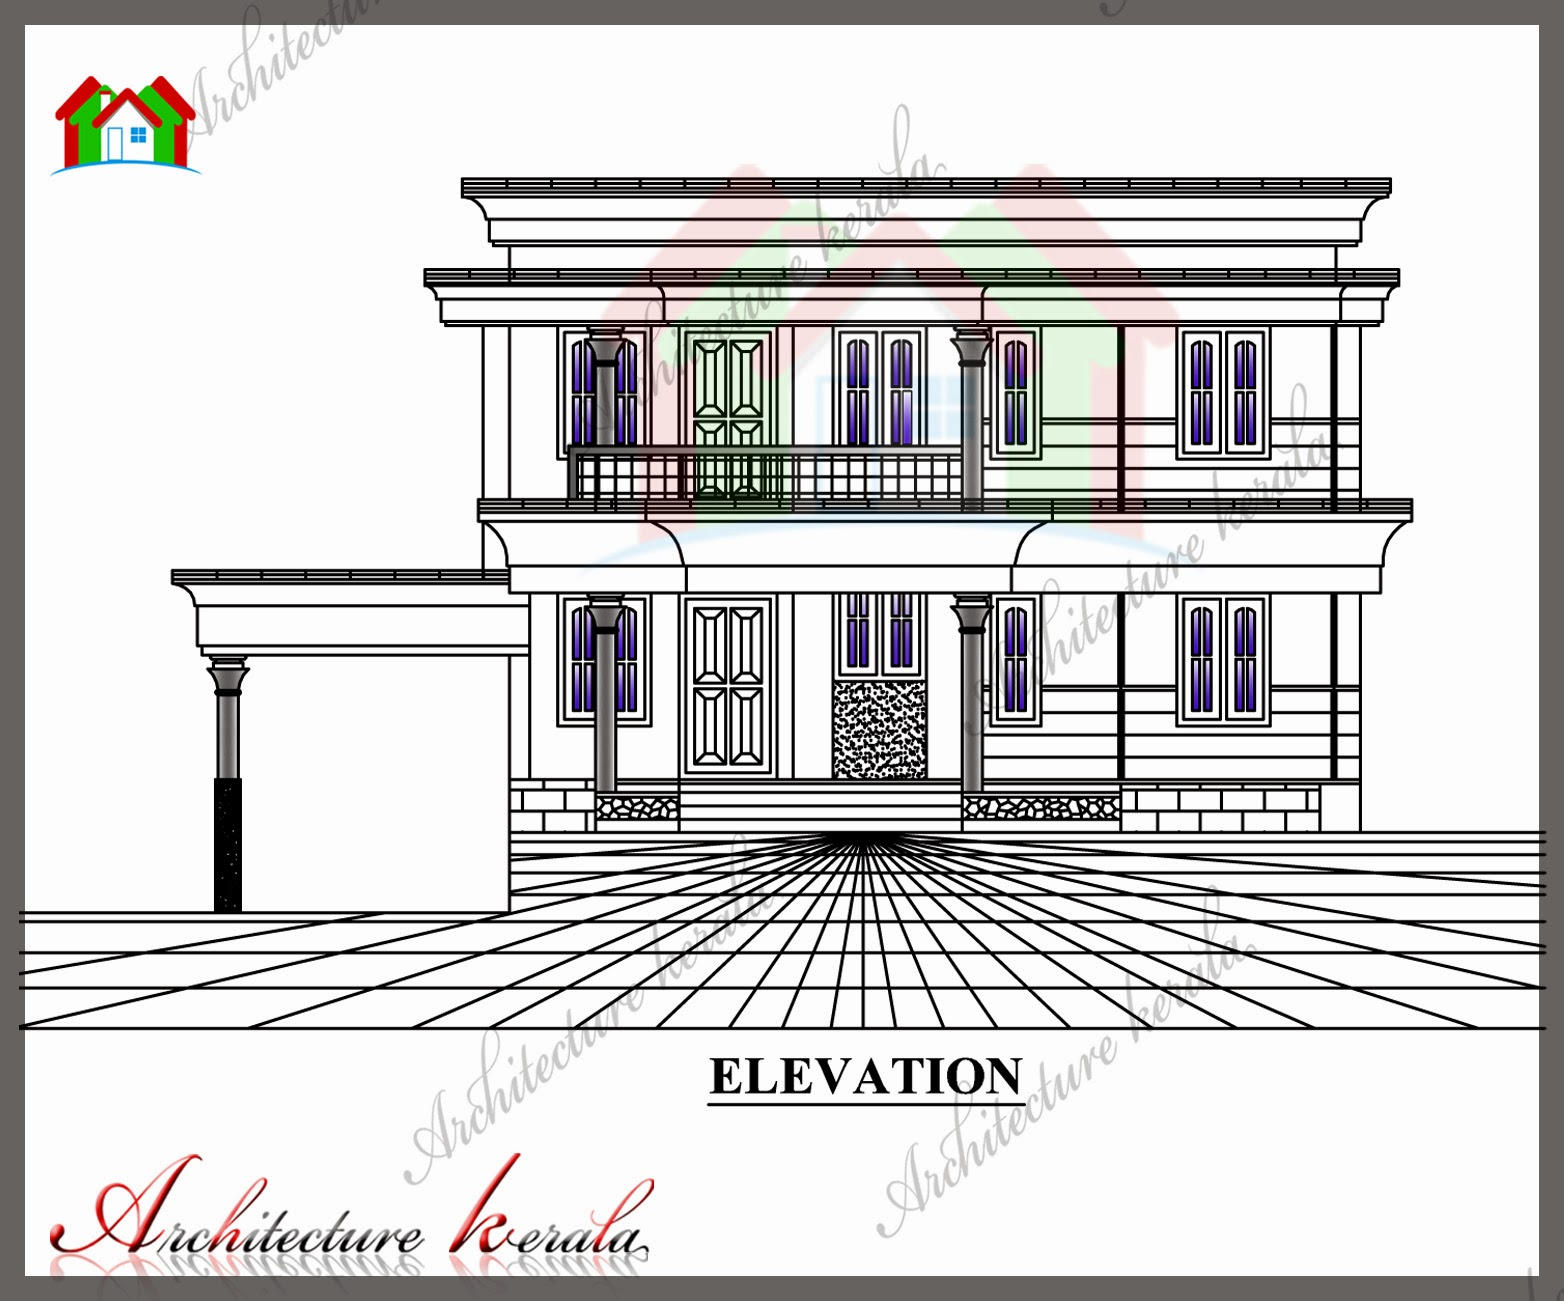 1800 sq ft house plan with detail dimensions for House plans with dimensions